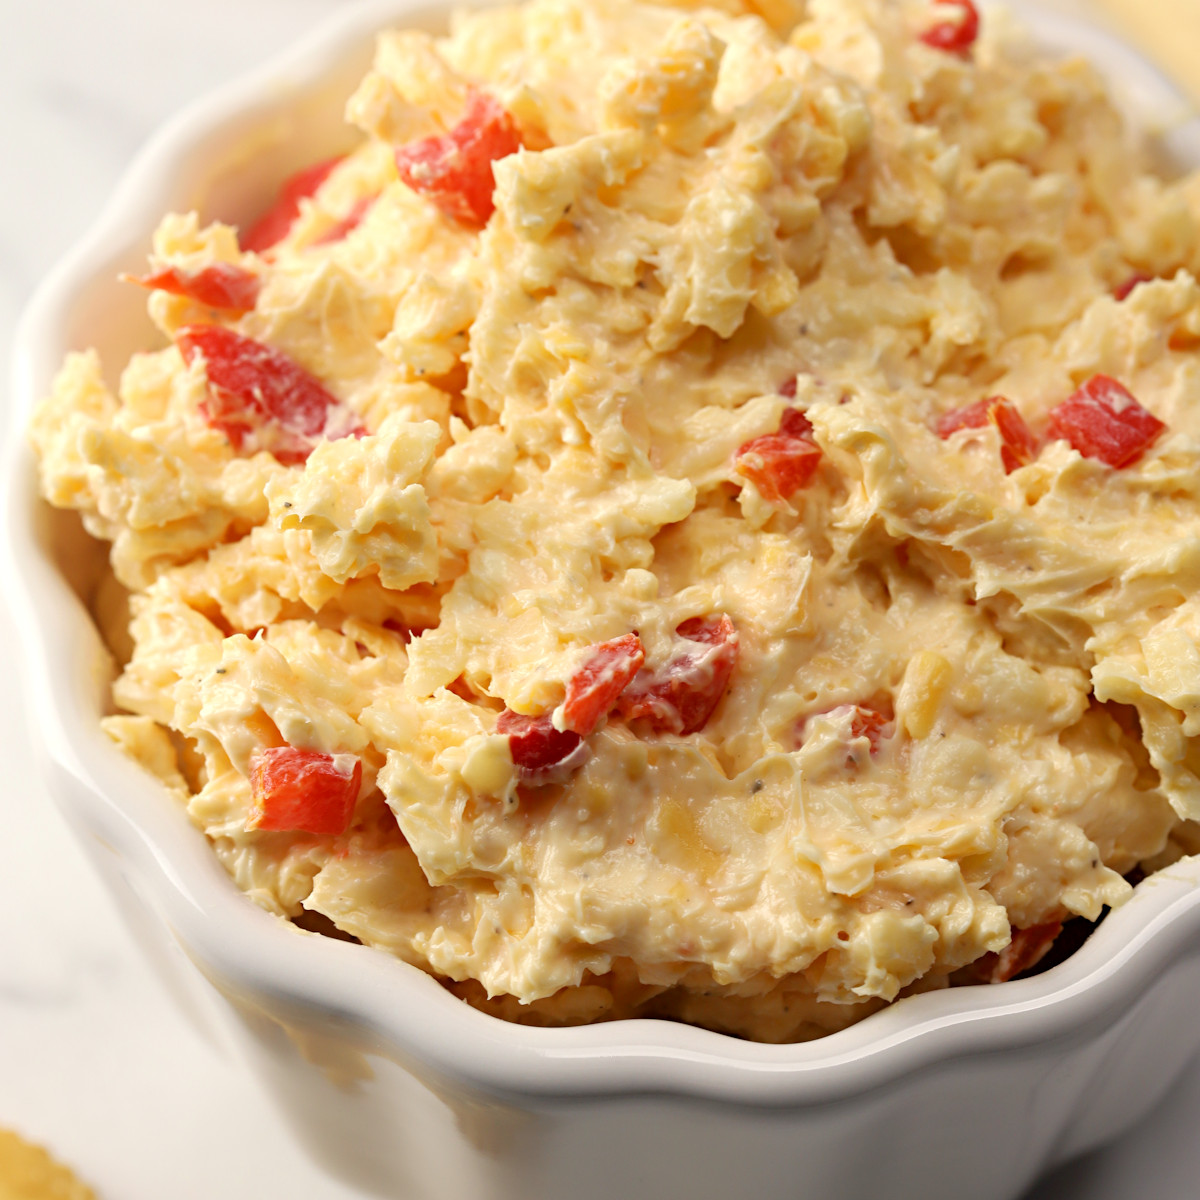 Scalloped bowl filled with pimento cheese.